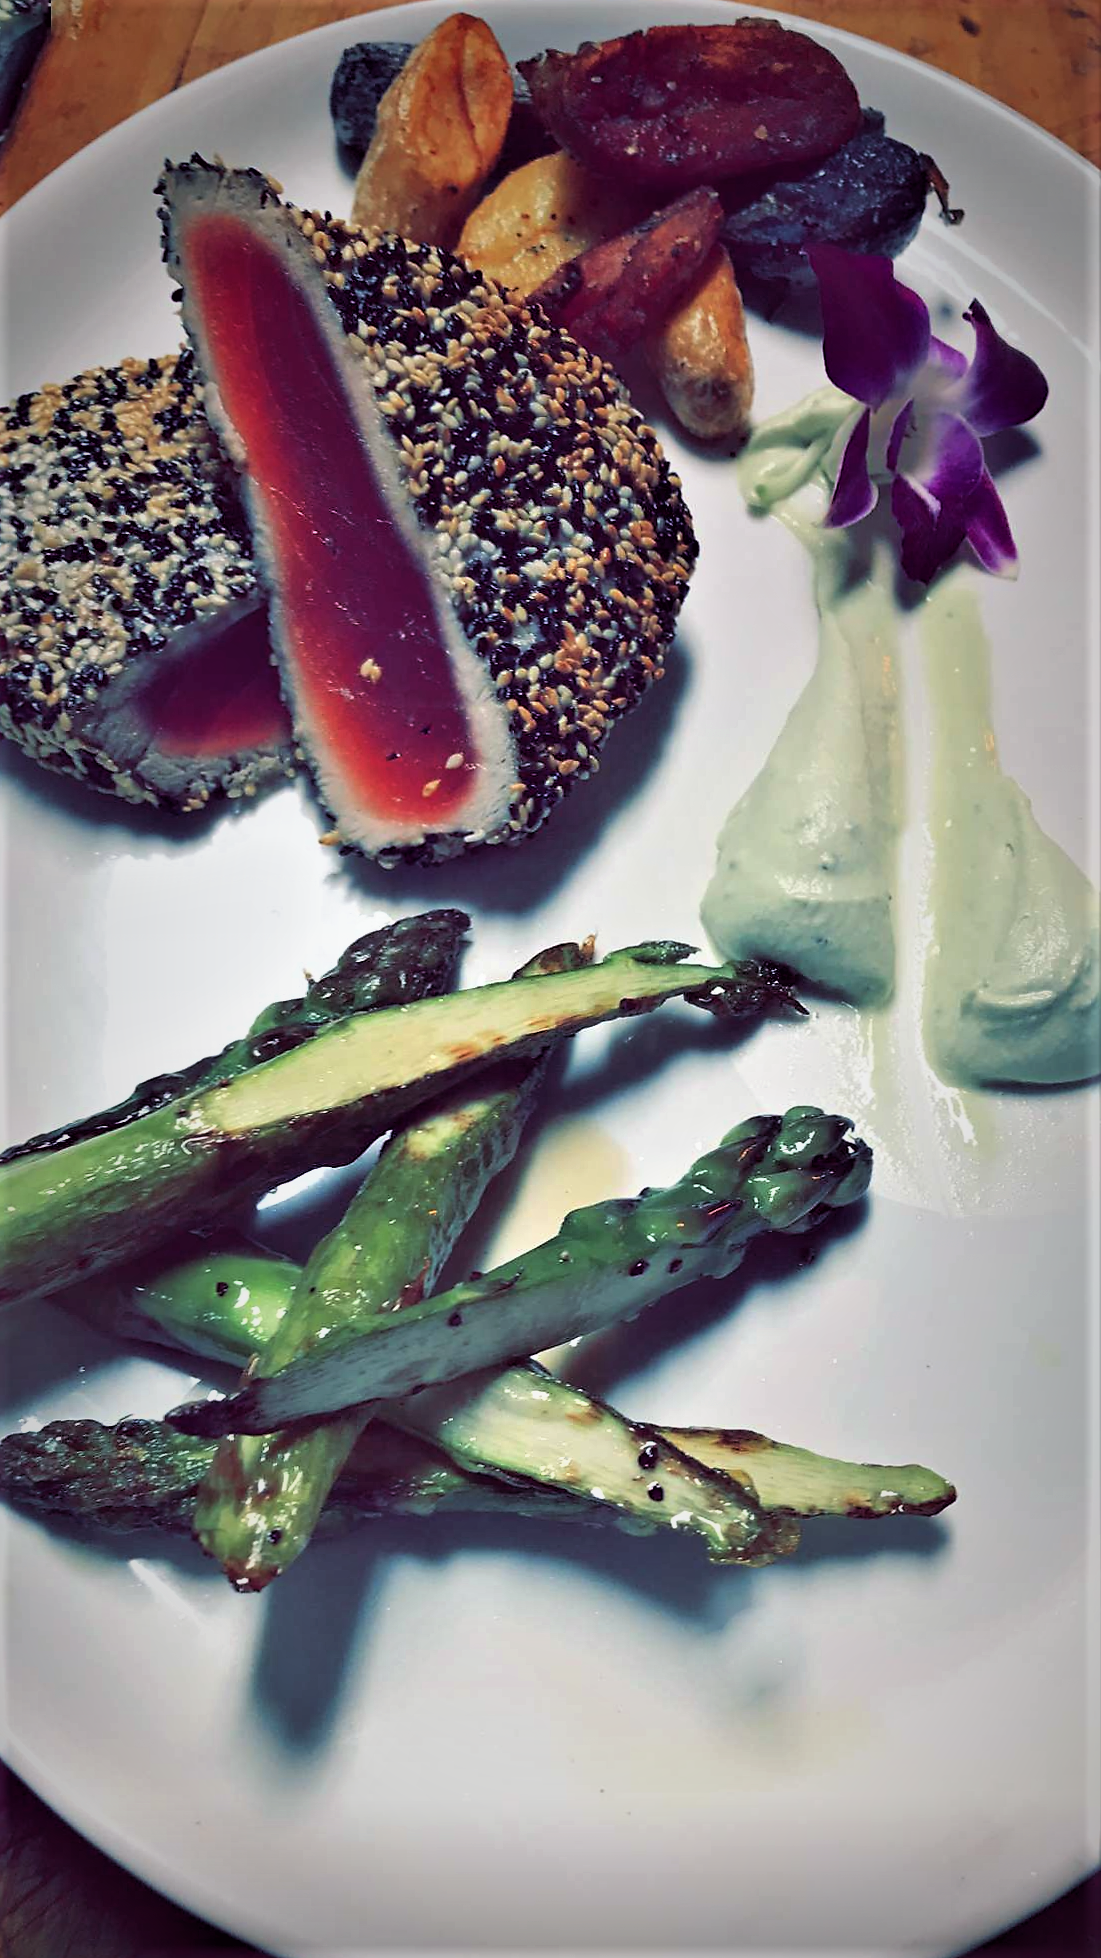 a plate with two pieces of tuna and a side of asparagus